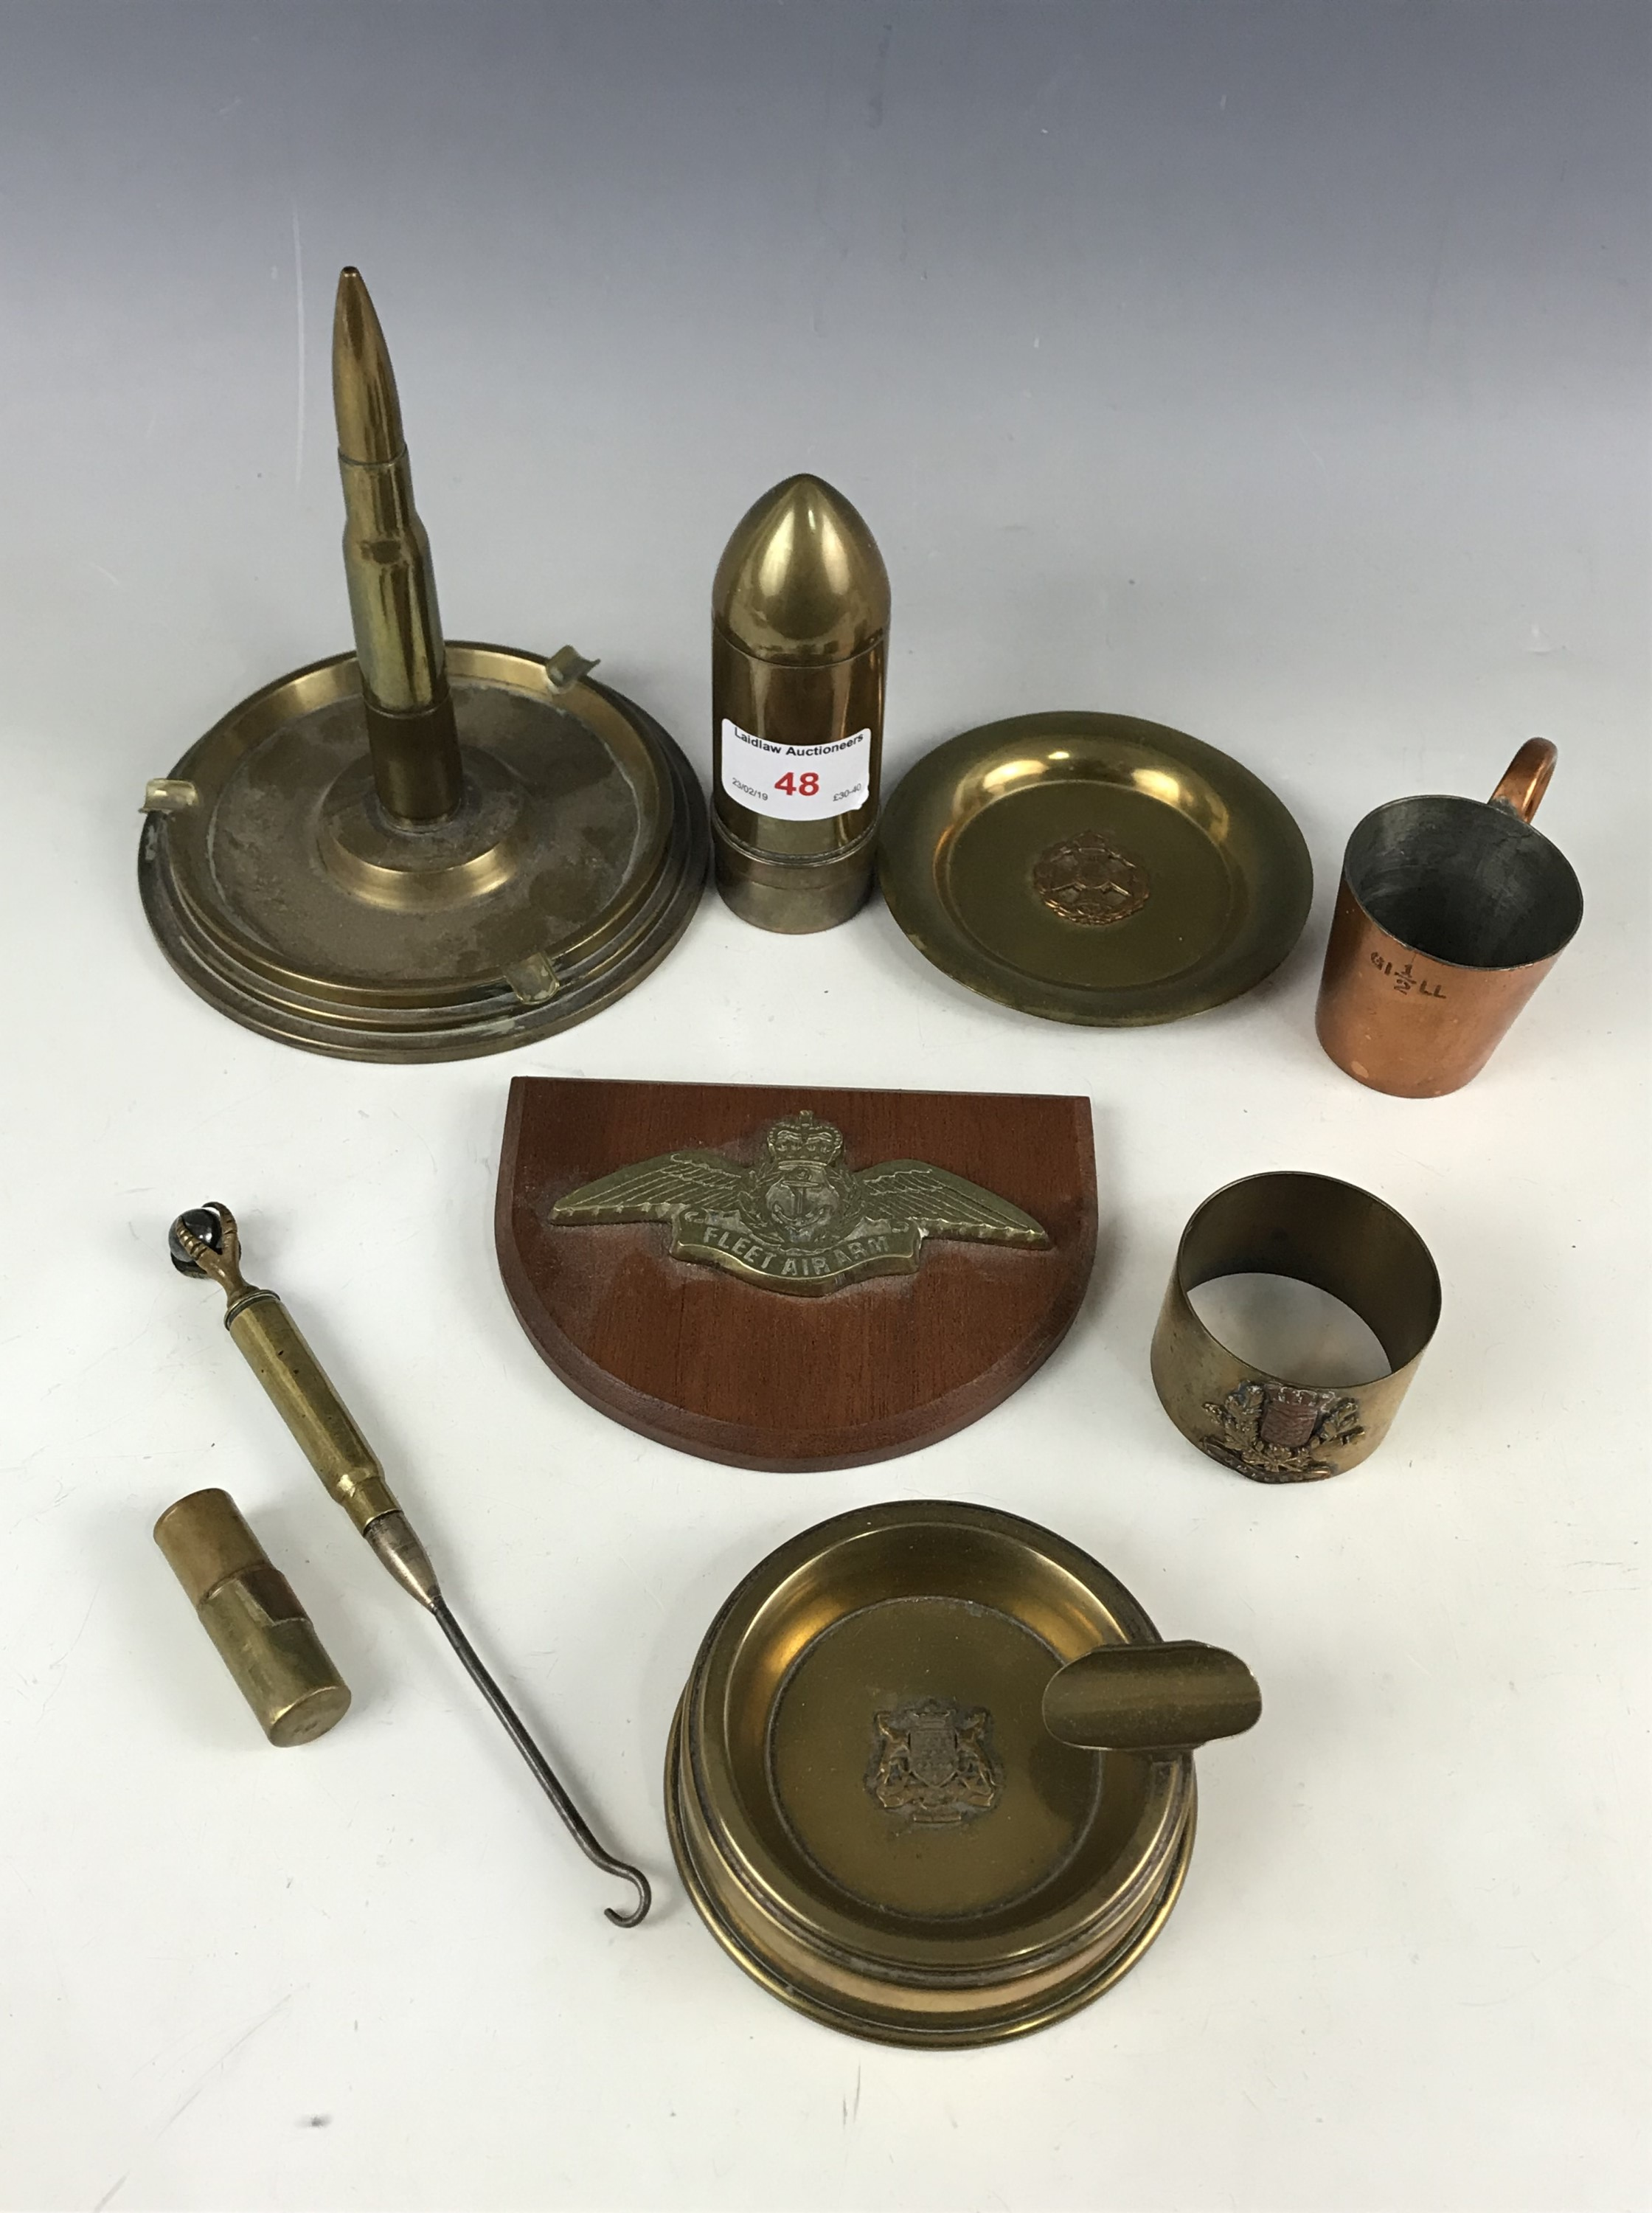 Lot 48 - A quantity of trench art and military metalware including a Pusser's rum measure